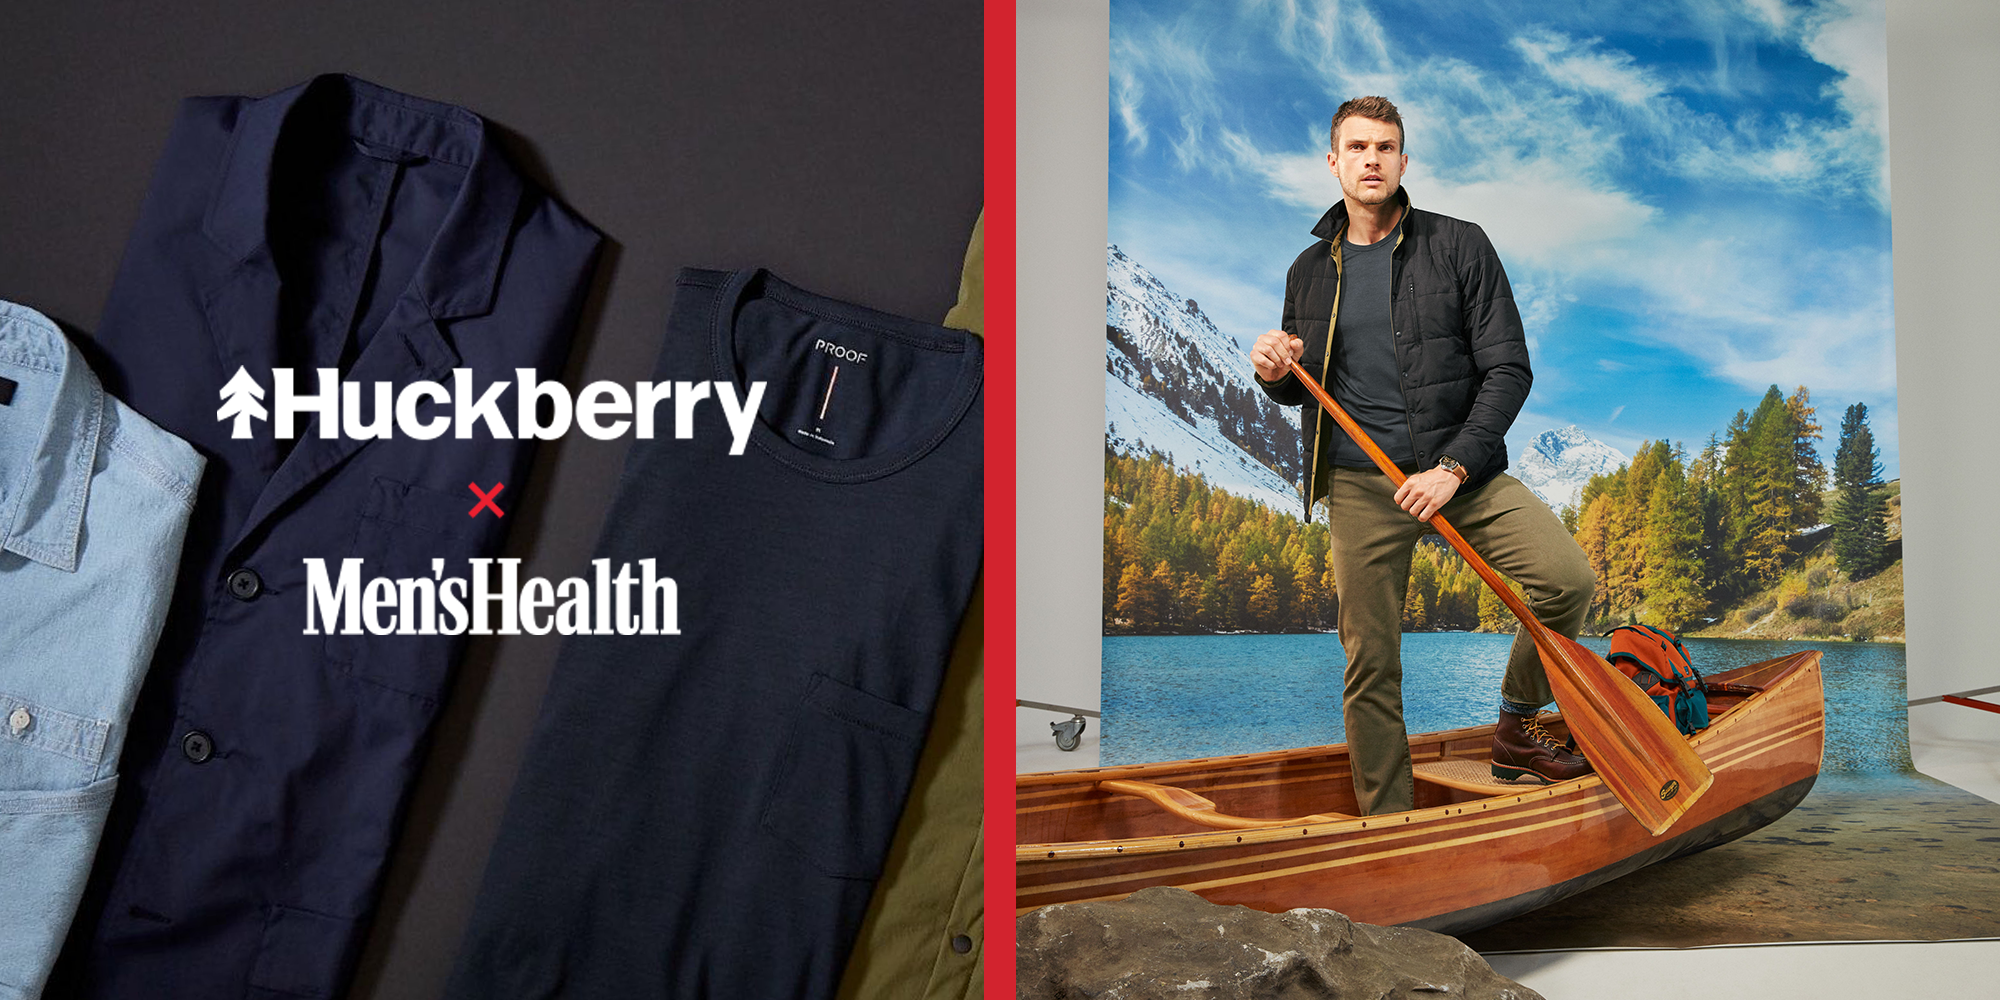 Upgrade Your Wardrobe This Fall With the Huckberry x Men's Health Collection